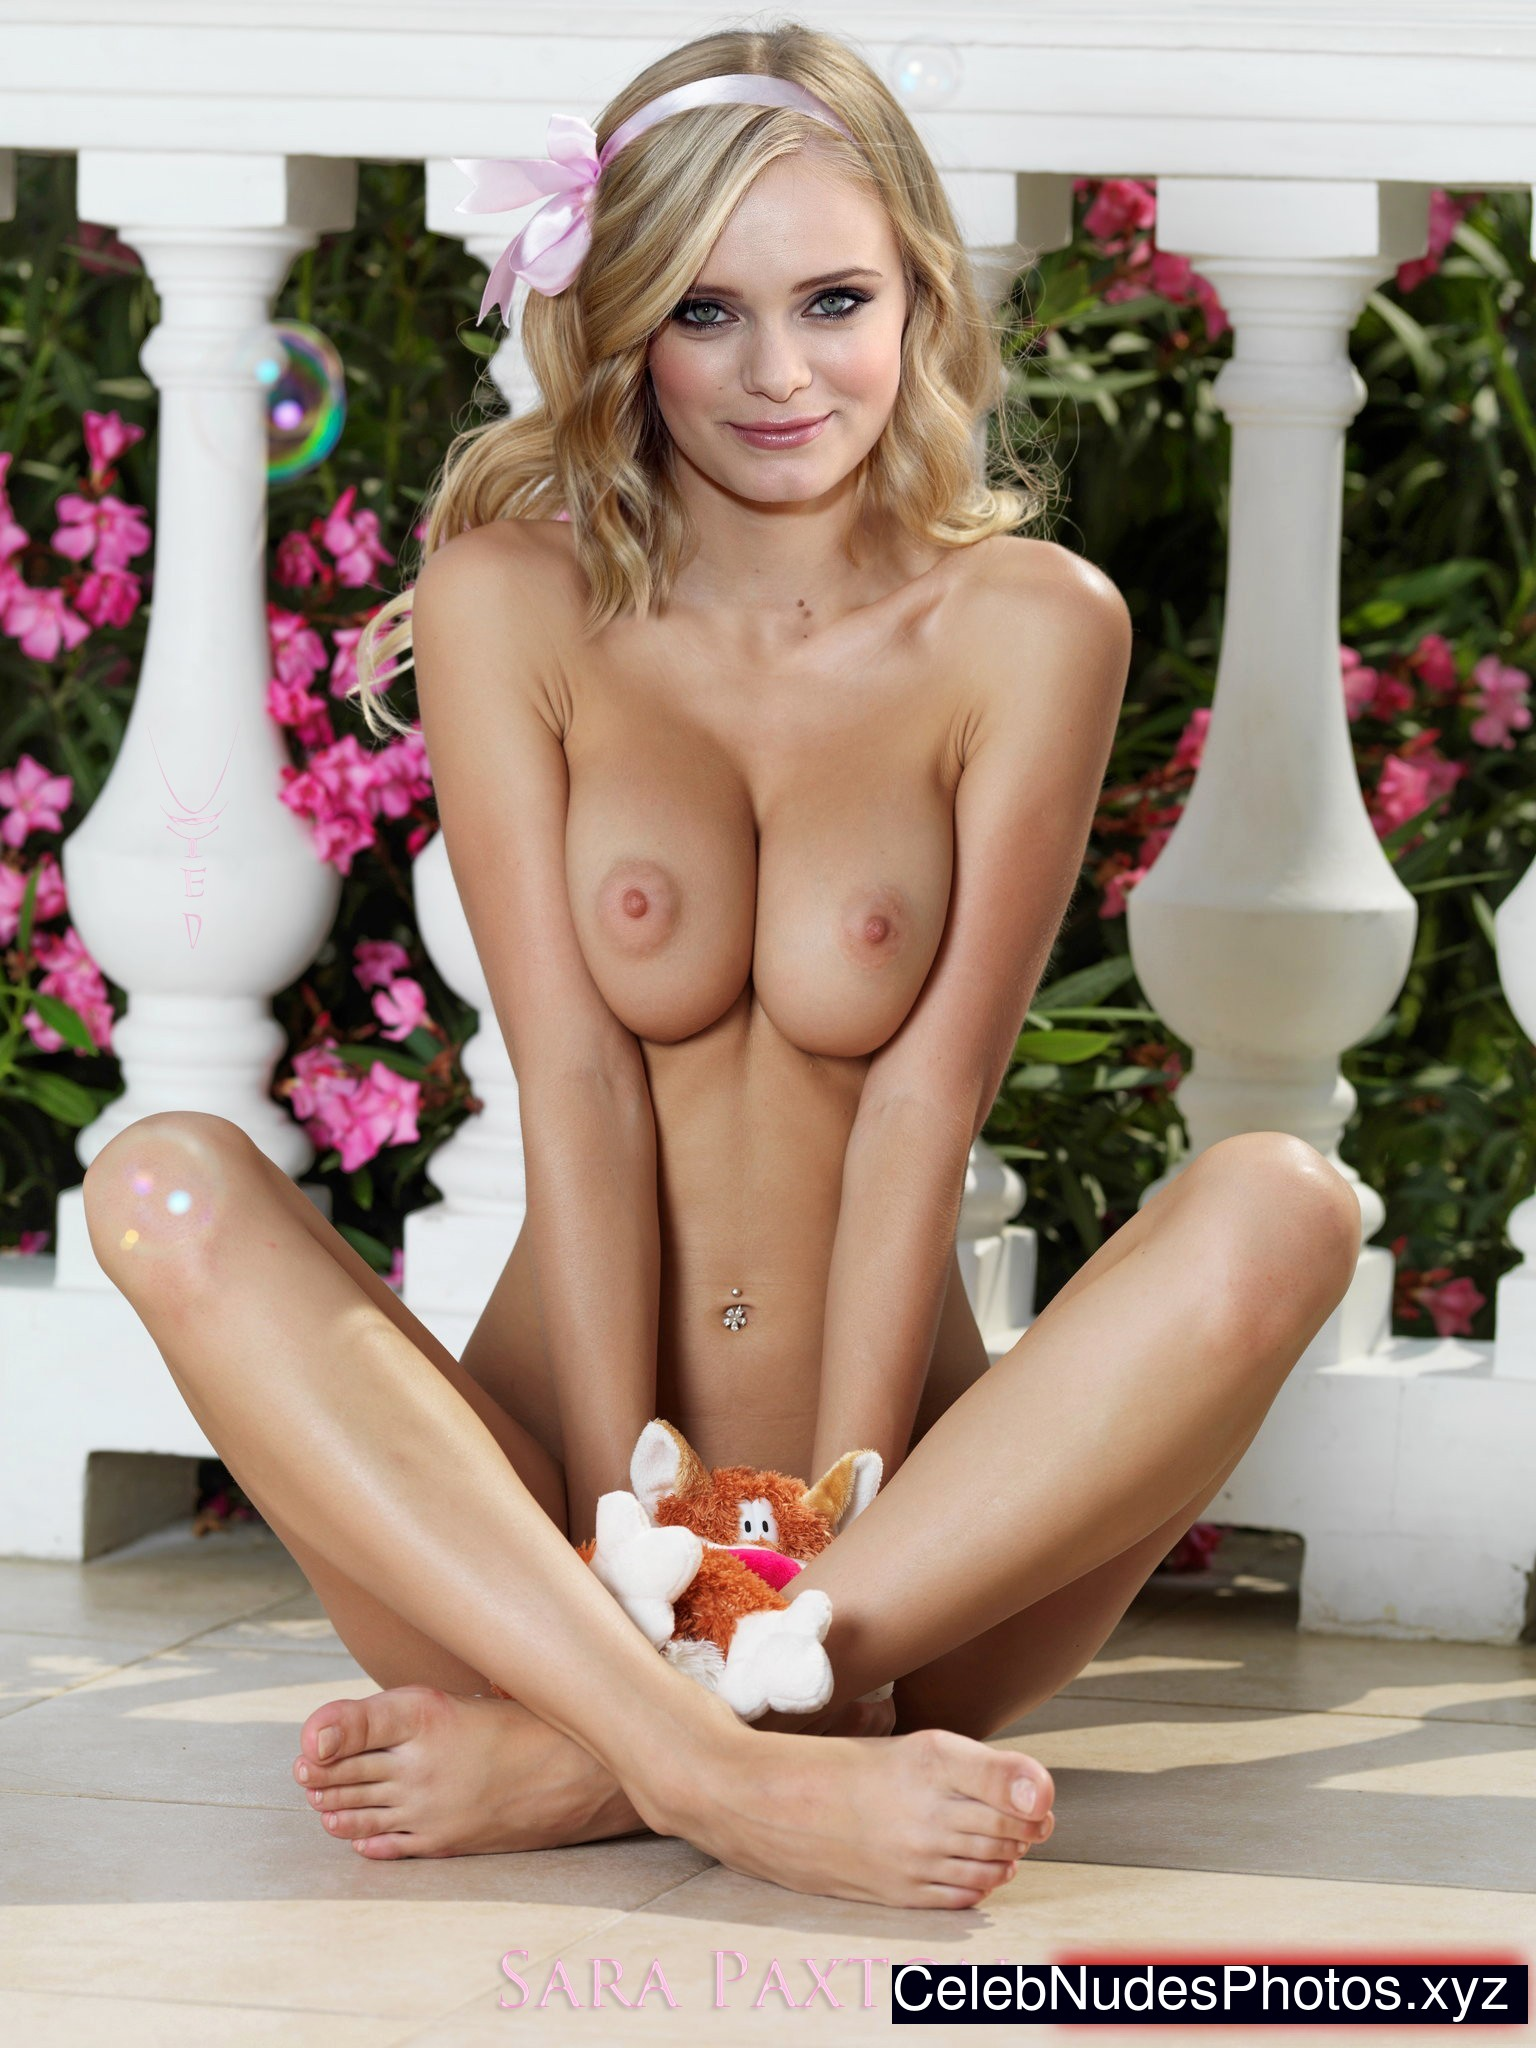 Have sara paxton nude sex are